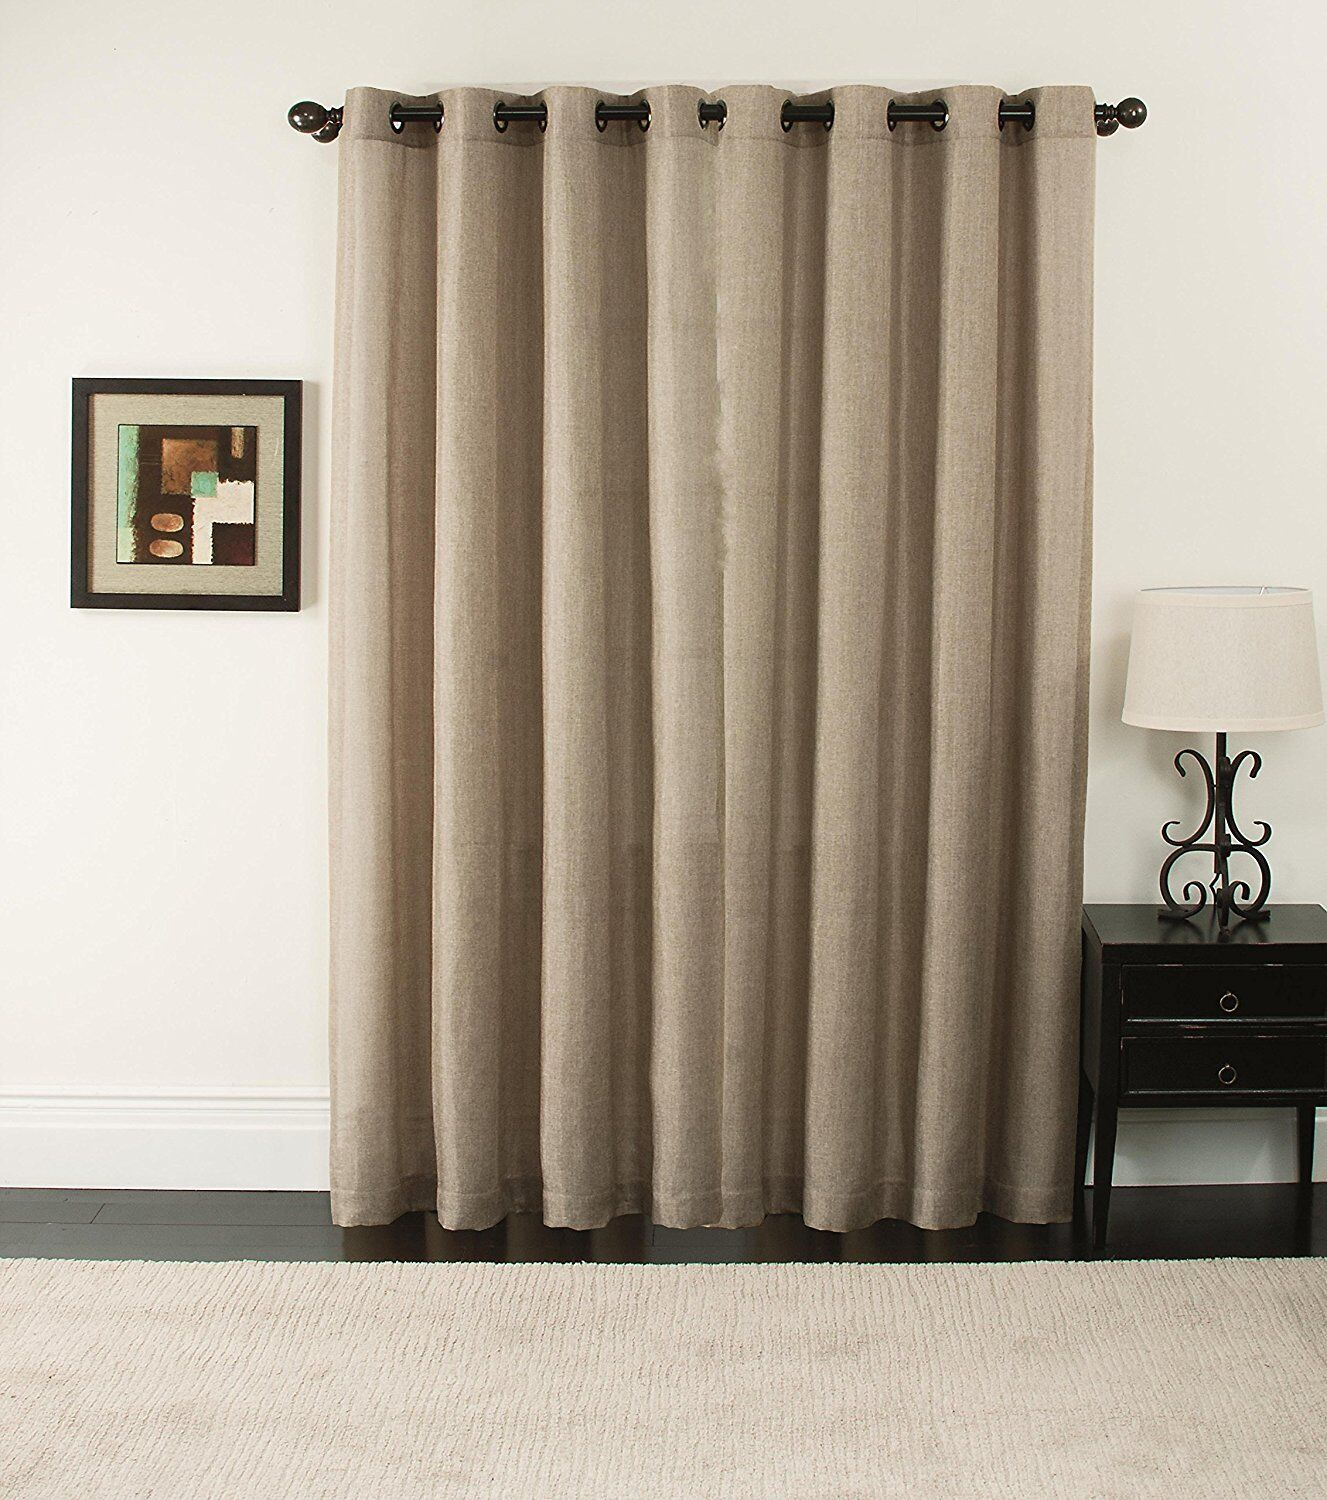 Sliding Panel Blinds Door Window Curtain Shade Patio Drape Room Beige Thermal